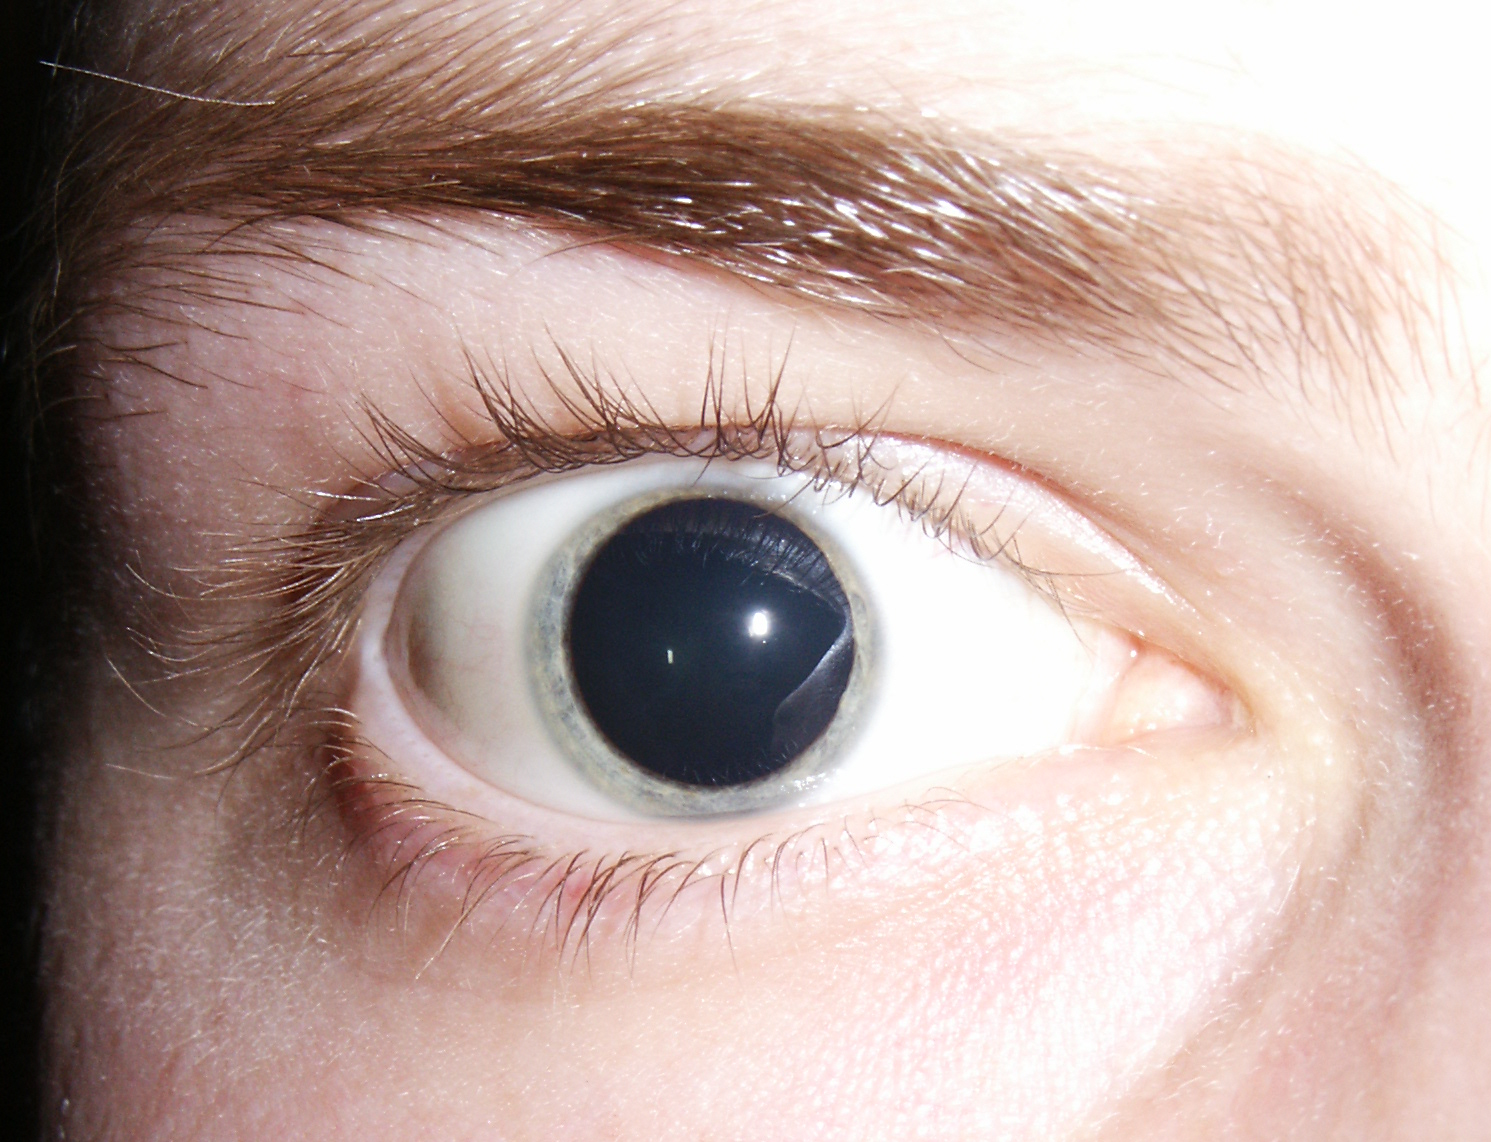 the pupil Pupil definition: pupil is defined as a dark circular opening in the center of the iris in the eye (noun) an example of the pupil is the center part of the eye that.